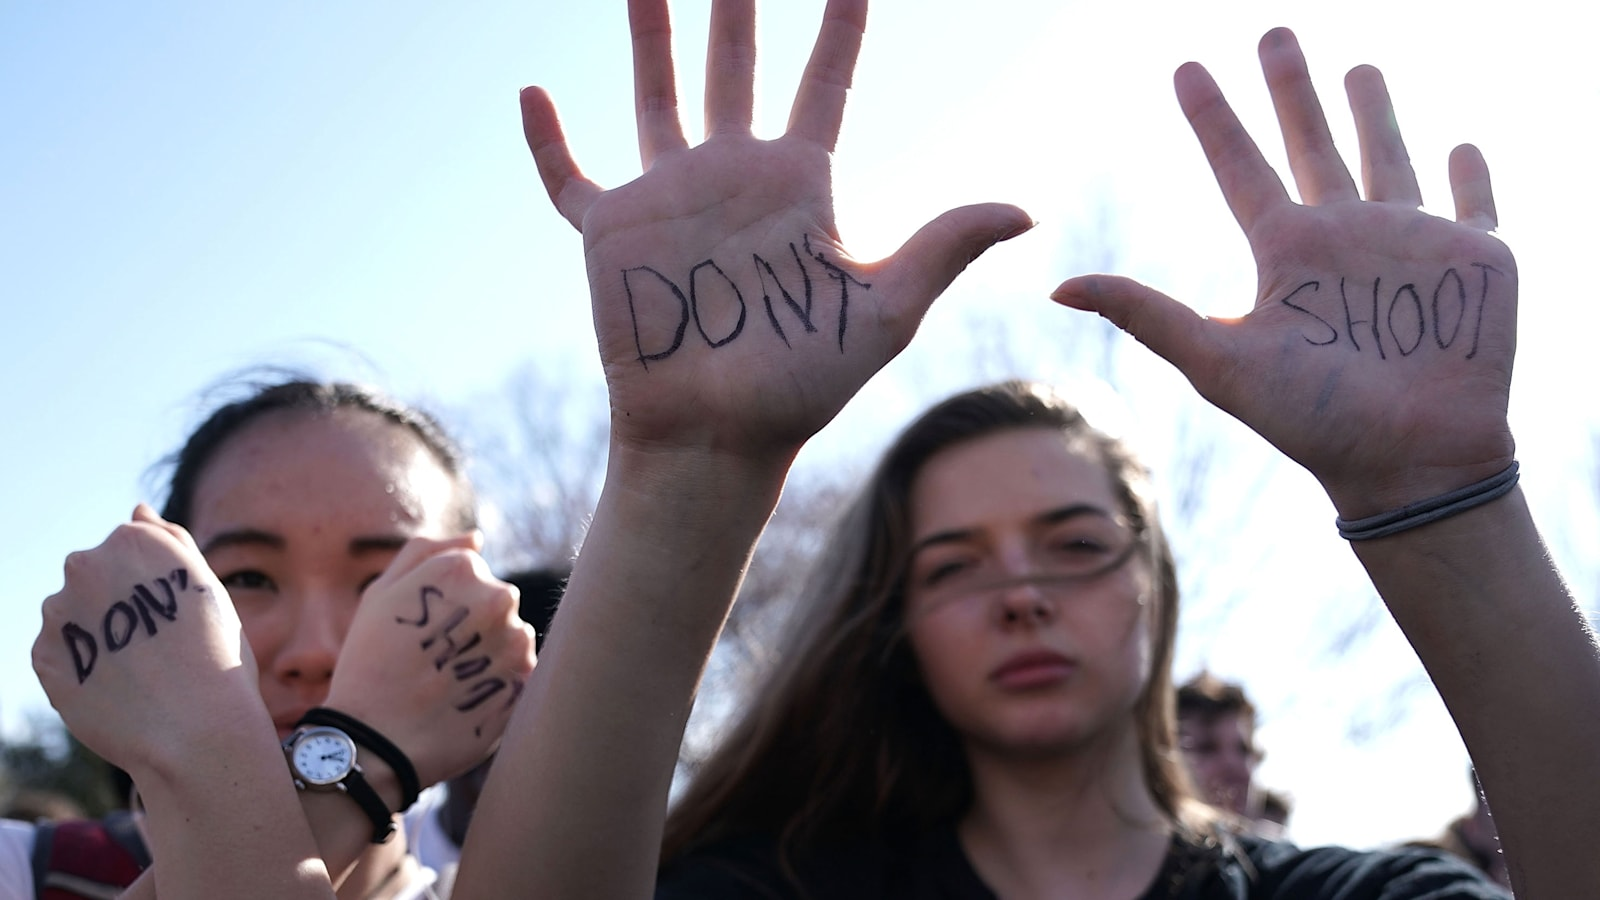 Walkouts, Sit-Ins, Protests: What Happens When Students Lead Movements